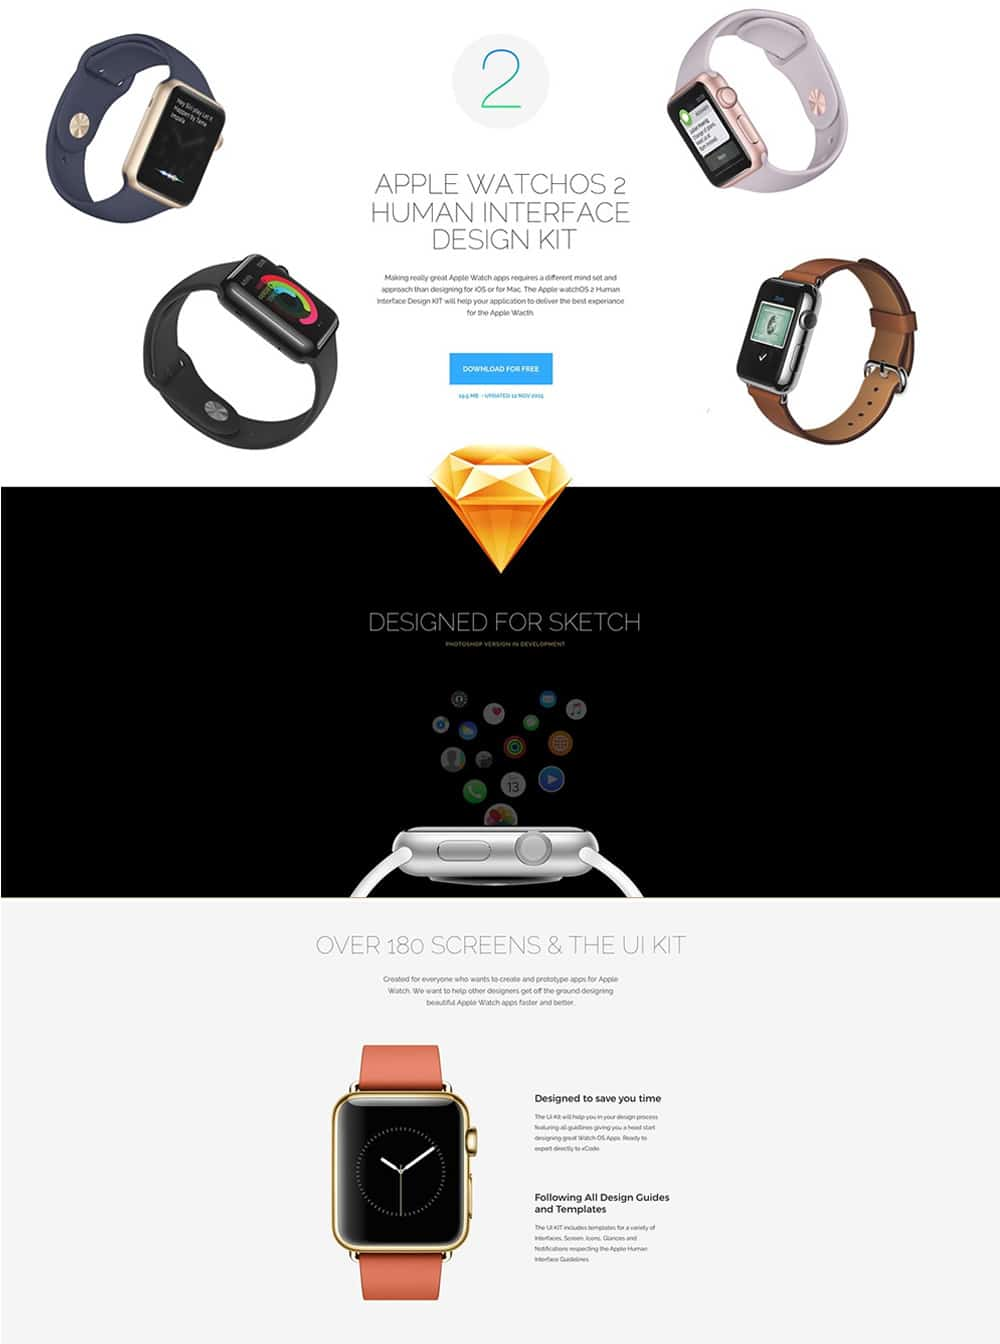 Apple watchOS 2 Human Interface Design KIT